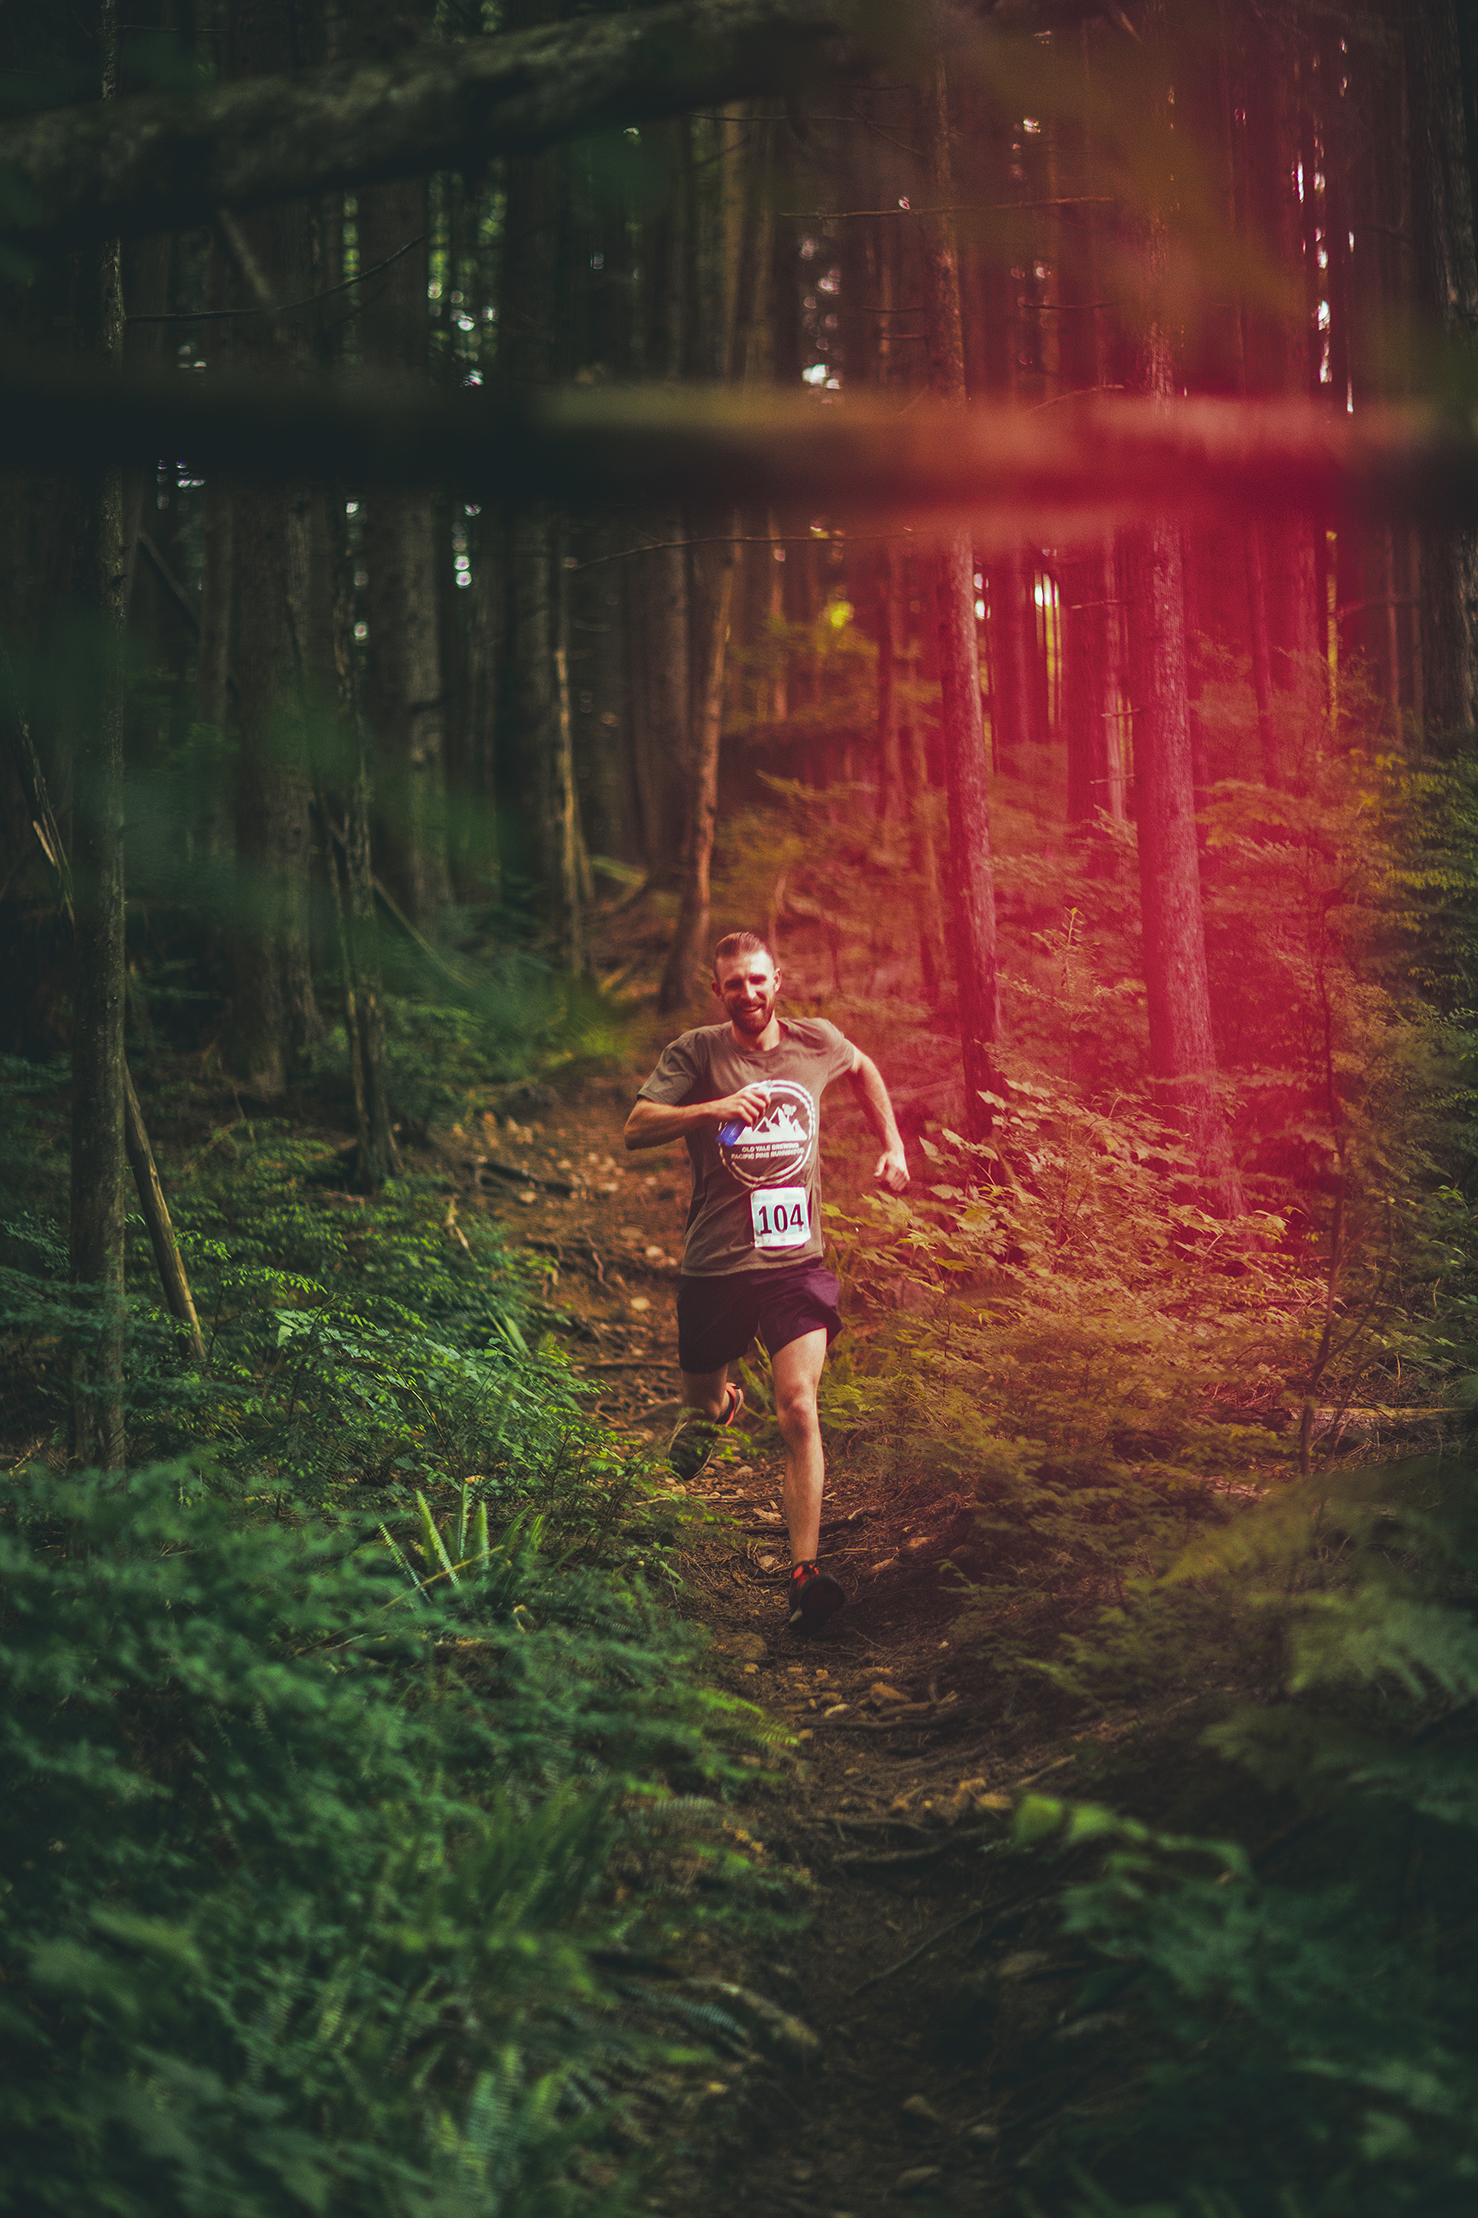 Fraser Valley Trail Races - Bear Mountain - IMG_1822 by Brice Ferre Studio - Vancouver Portrait Adventure and Athlete Photographer.jpg